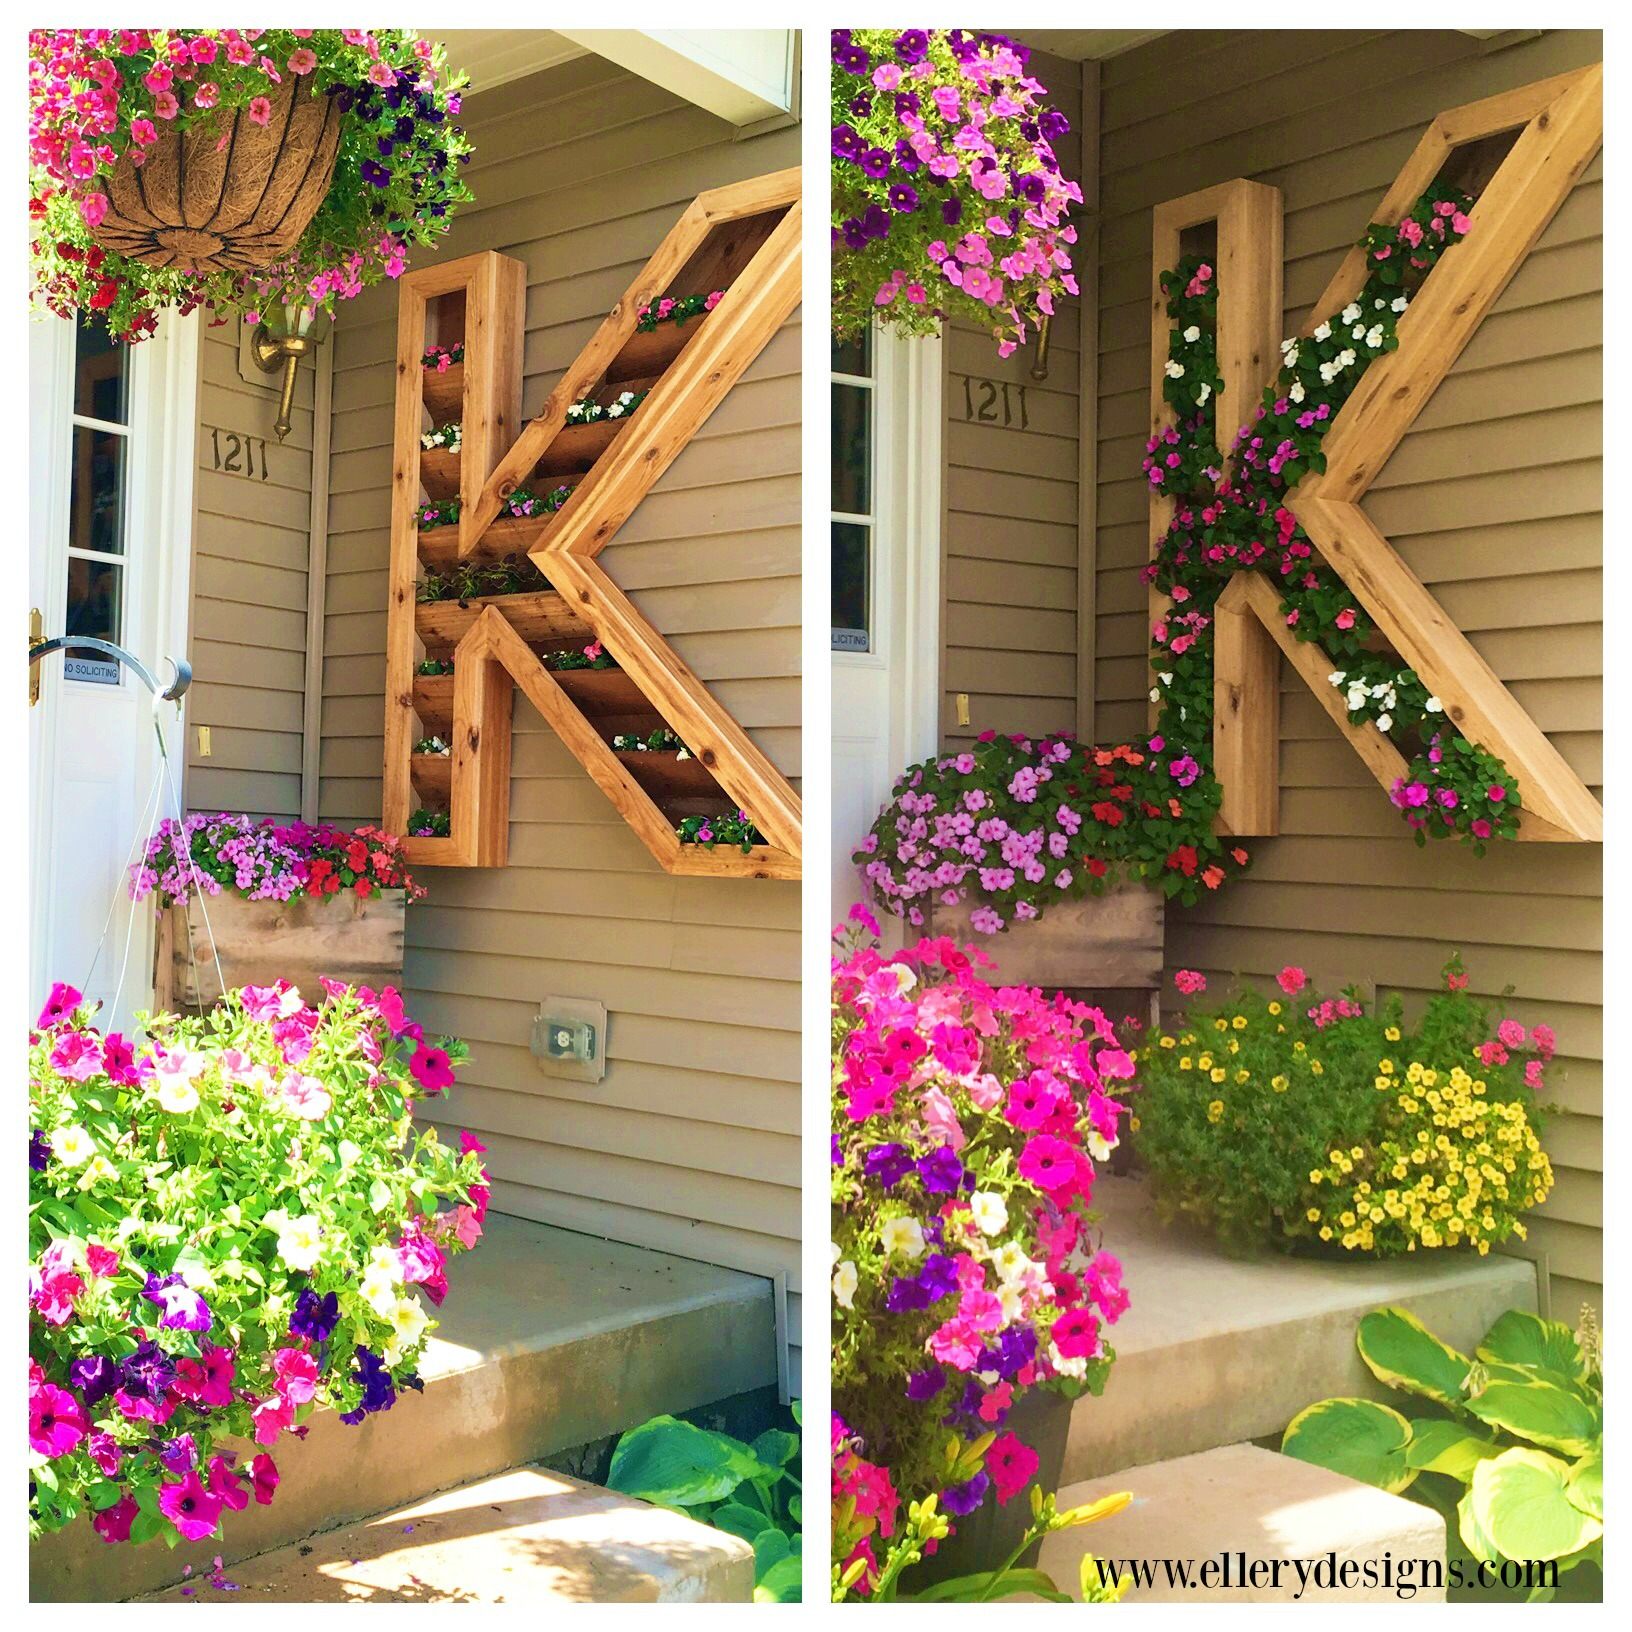 Diy Outdoor Monogram Planter By Ellery Designs On @Remodelaholic